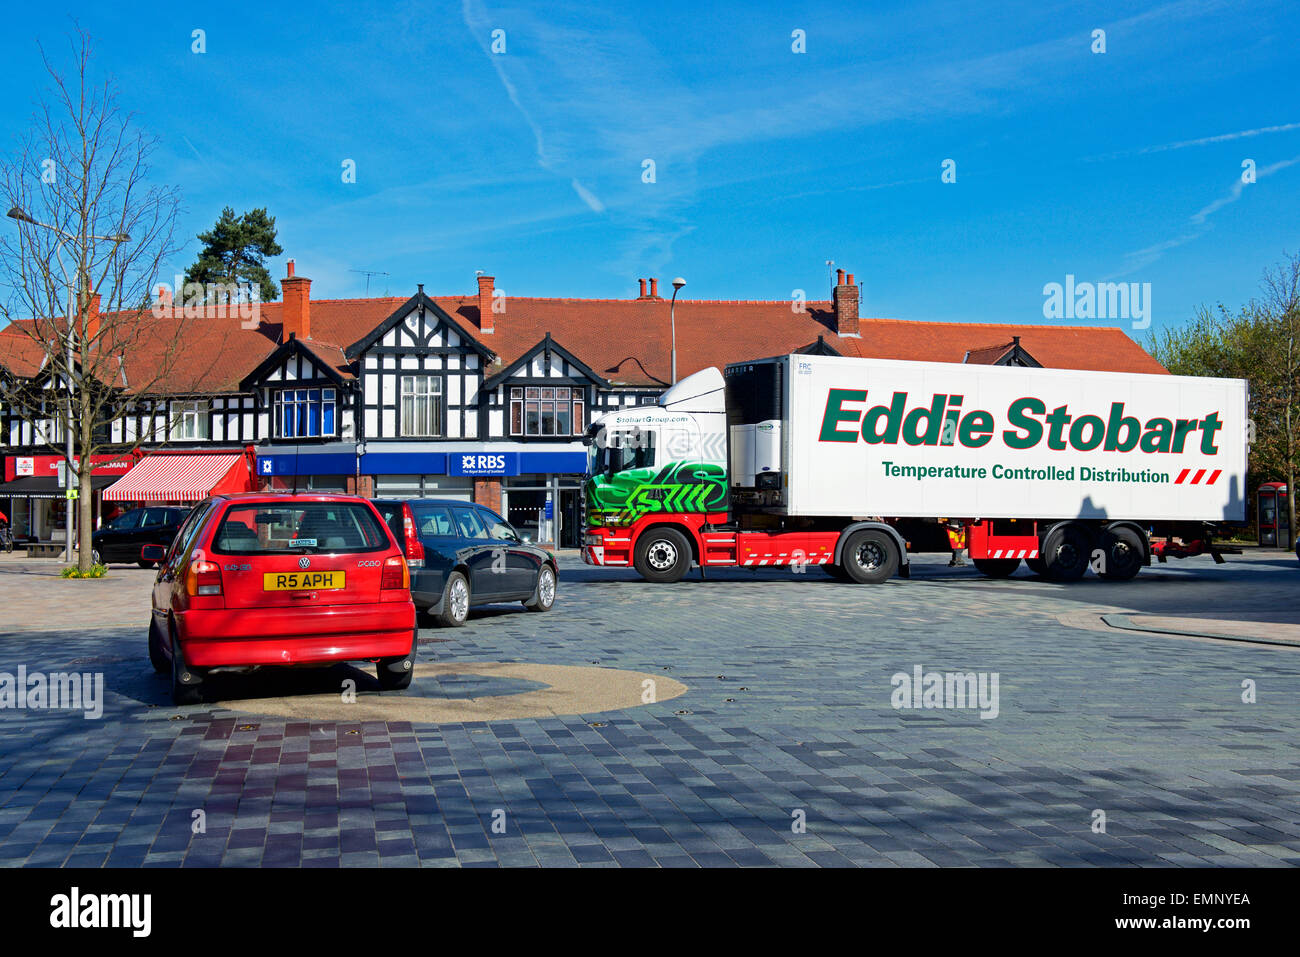 New shared space scheme for traffic in Poynton,Cheshire, - Stock Image